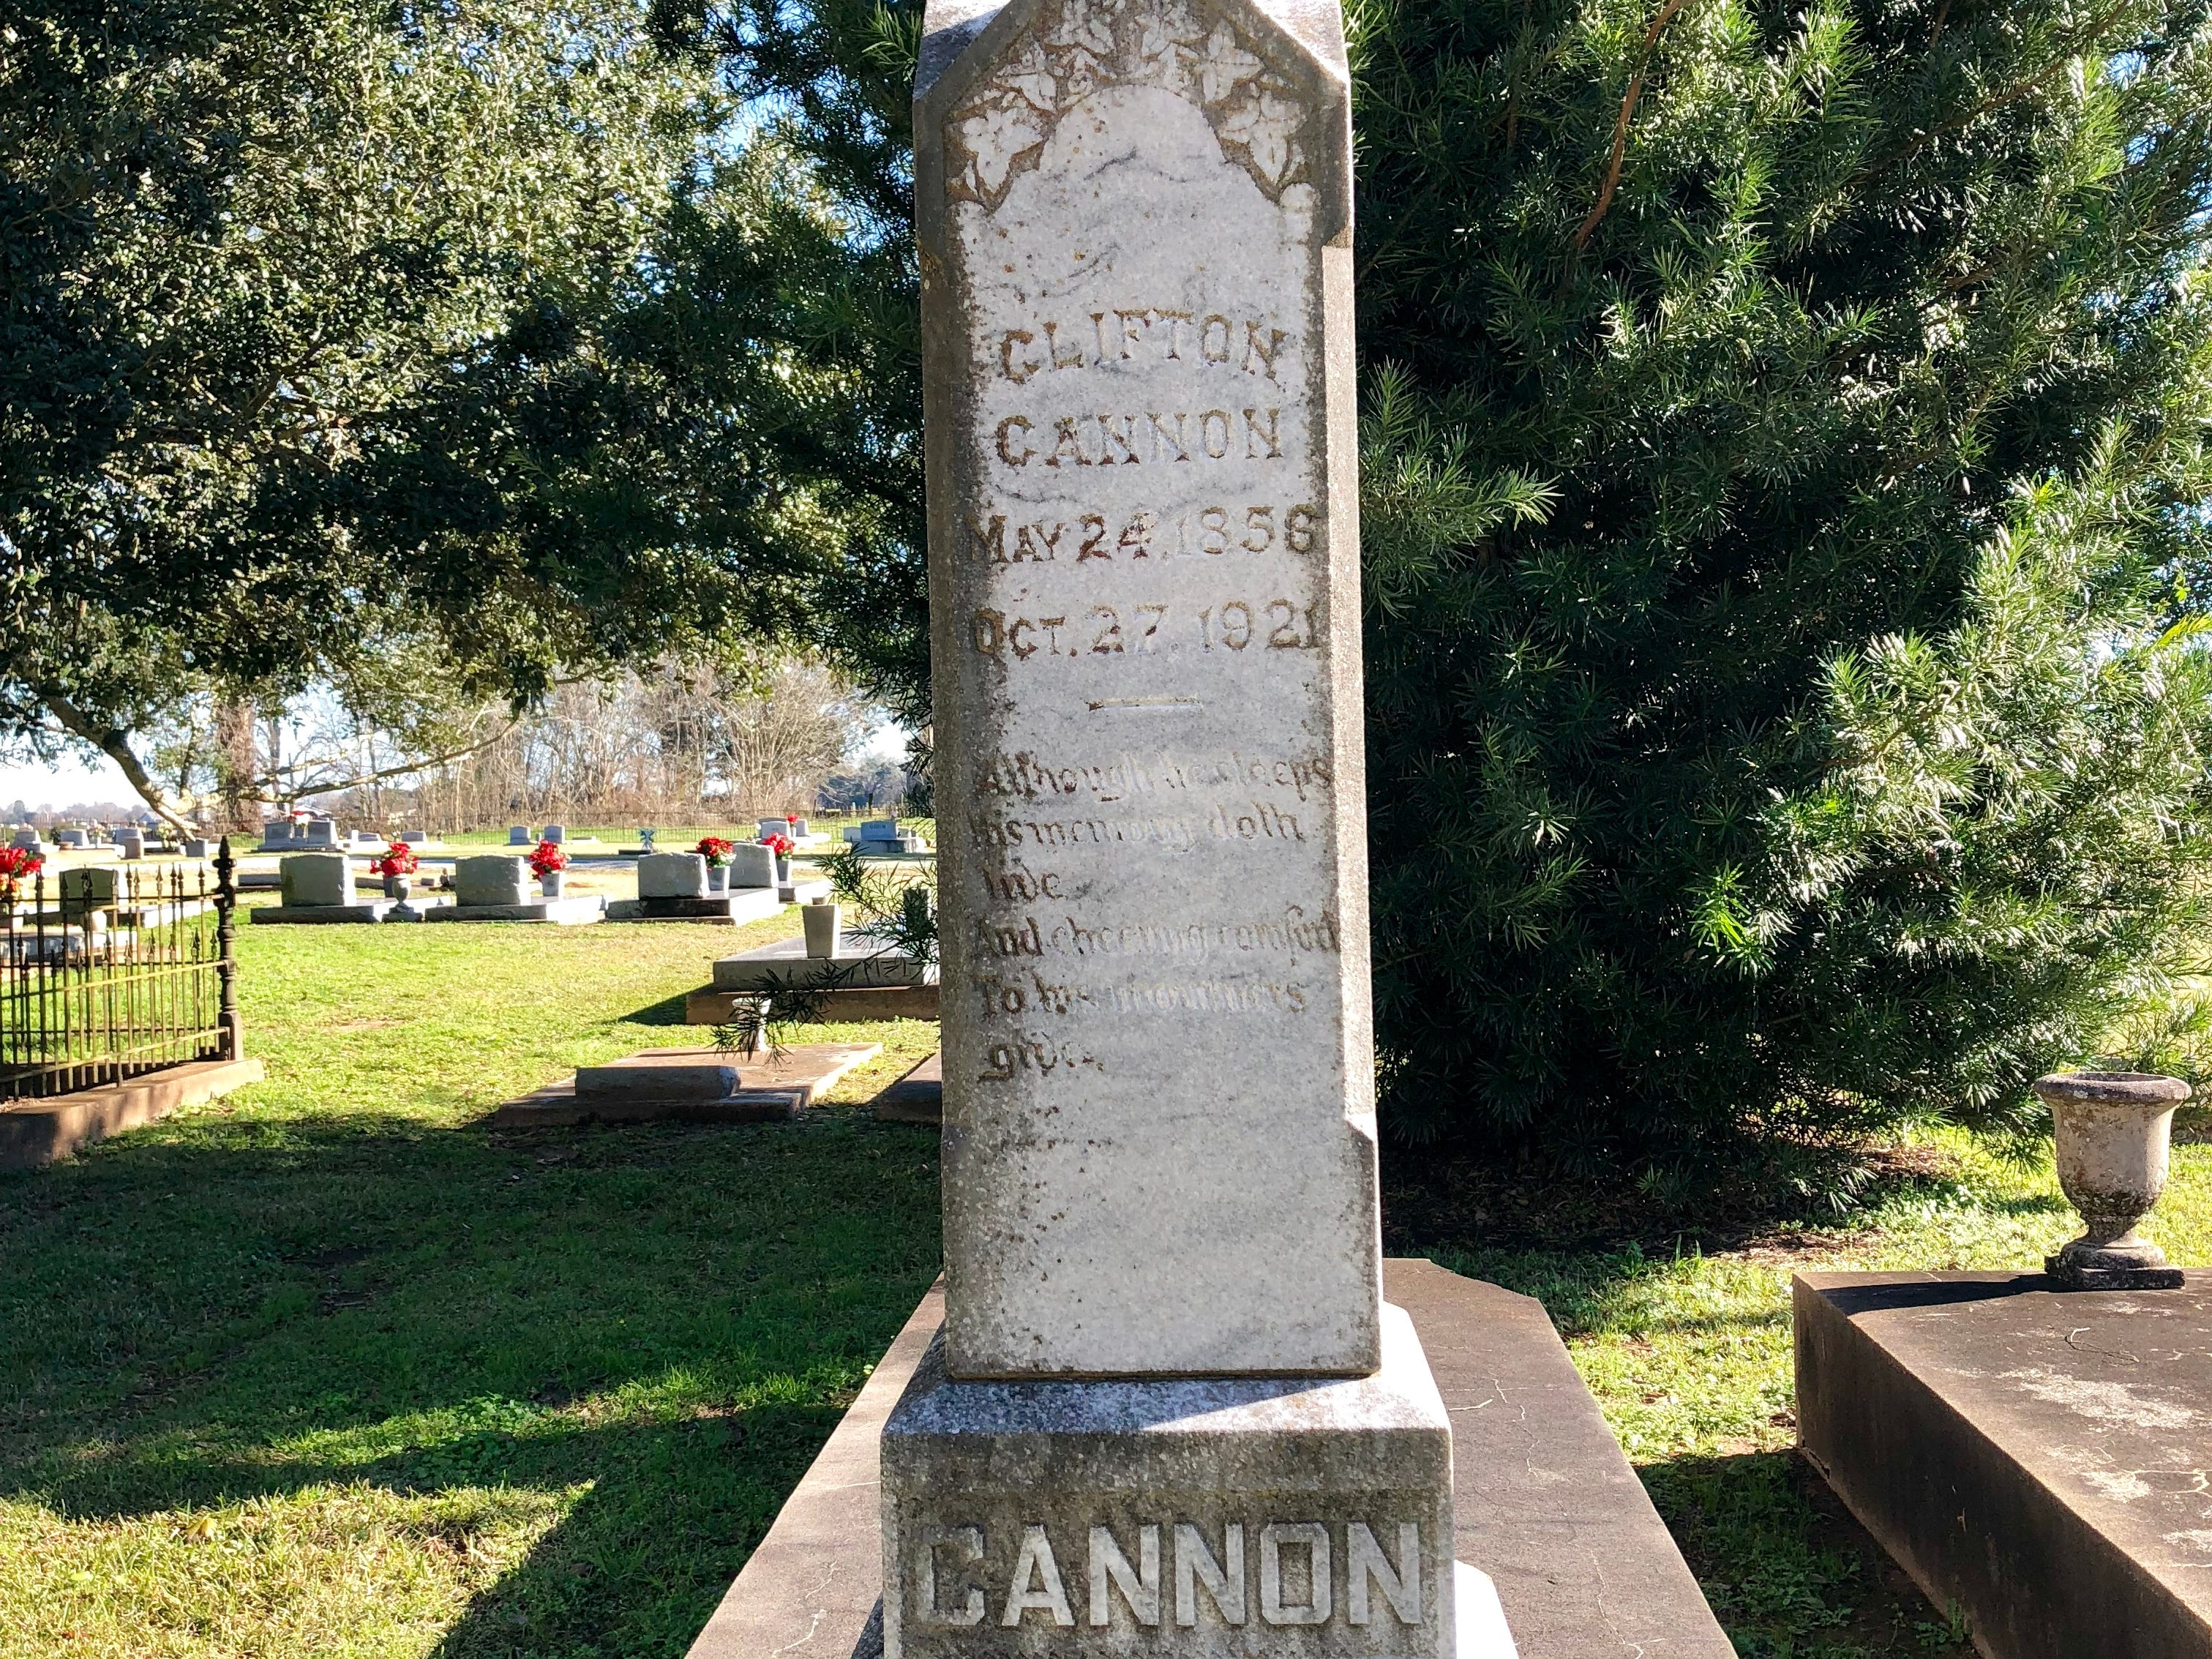 Historic graves like this one dating 1921 (and older) surround Trinity Episcopal Church in Cheneyville. The church built in 1860 is part of the Northup Trail, one of 18 Louisiana Byways designated by the state Office of Tourism.